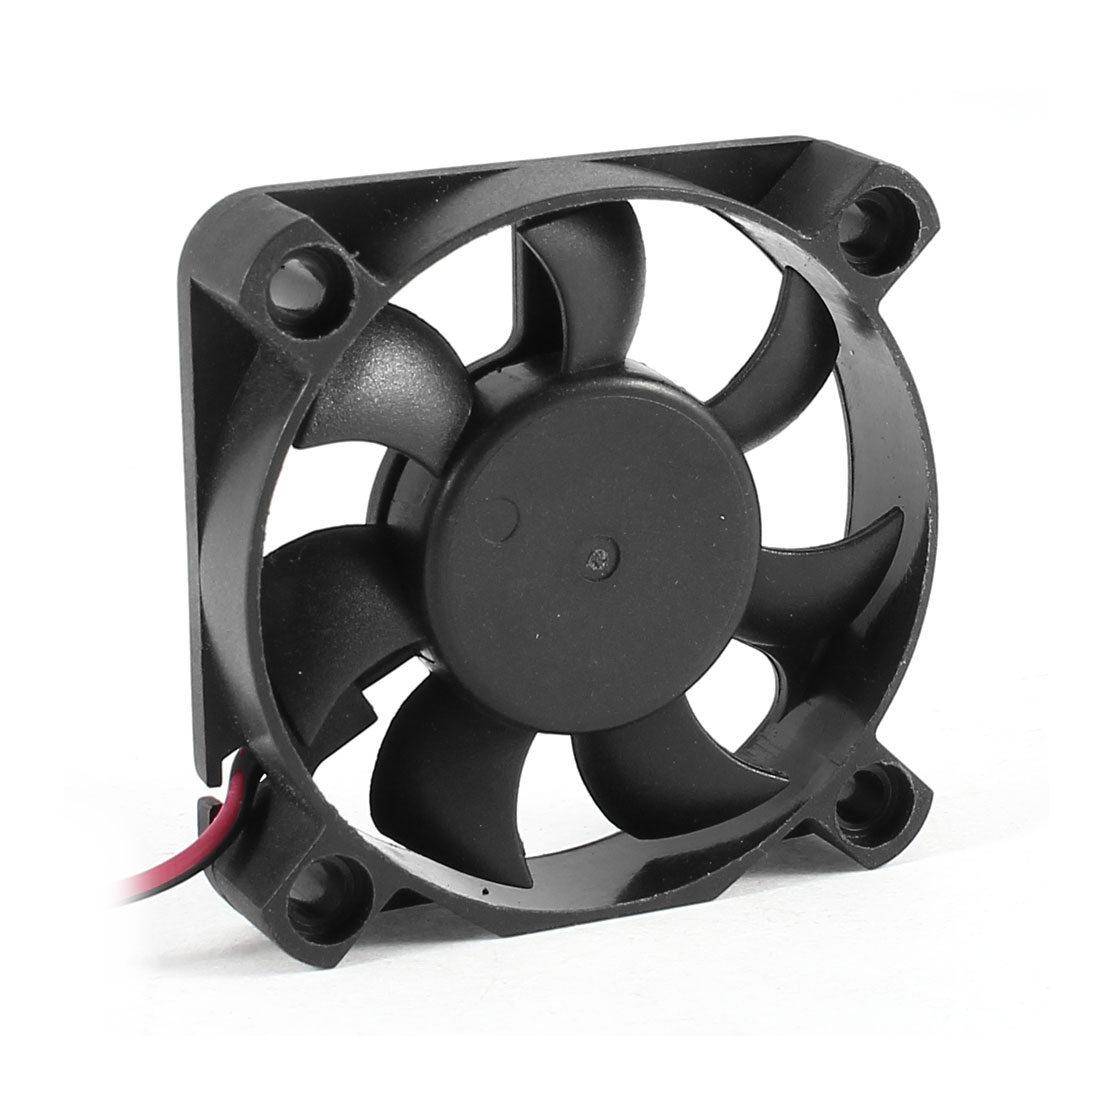 50mmx10mm 2 Pole DC Brushless 0.12A CPU Cooler Cooling Fan Black